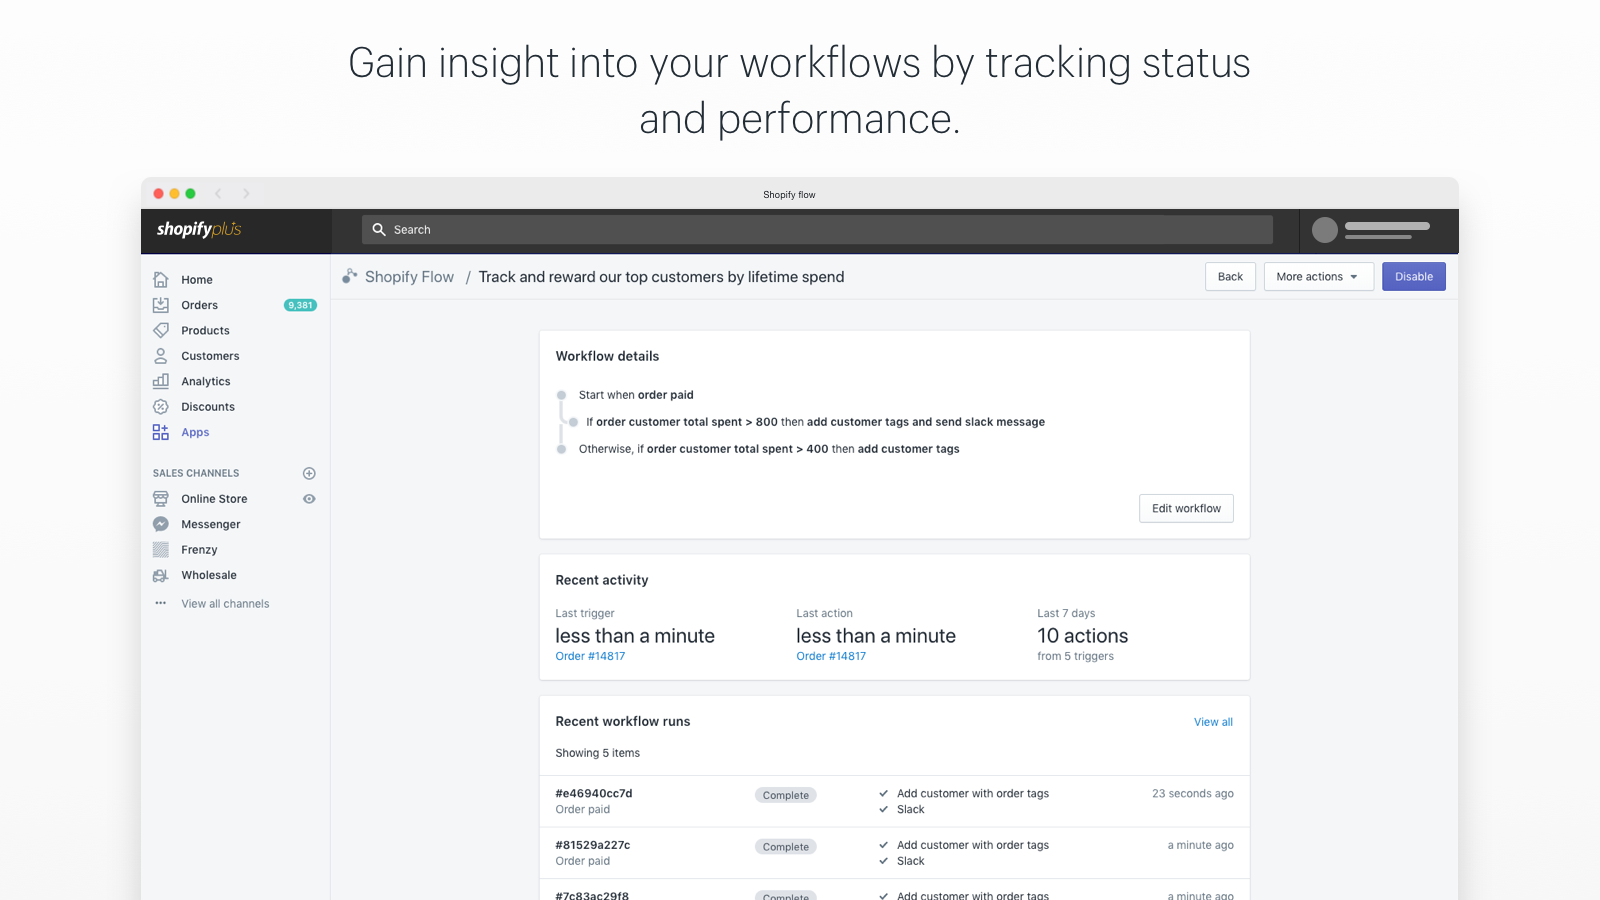 Reduce the steps and resources required to complete workflows